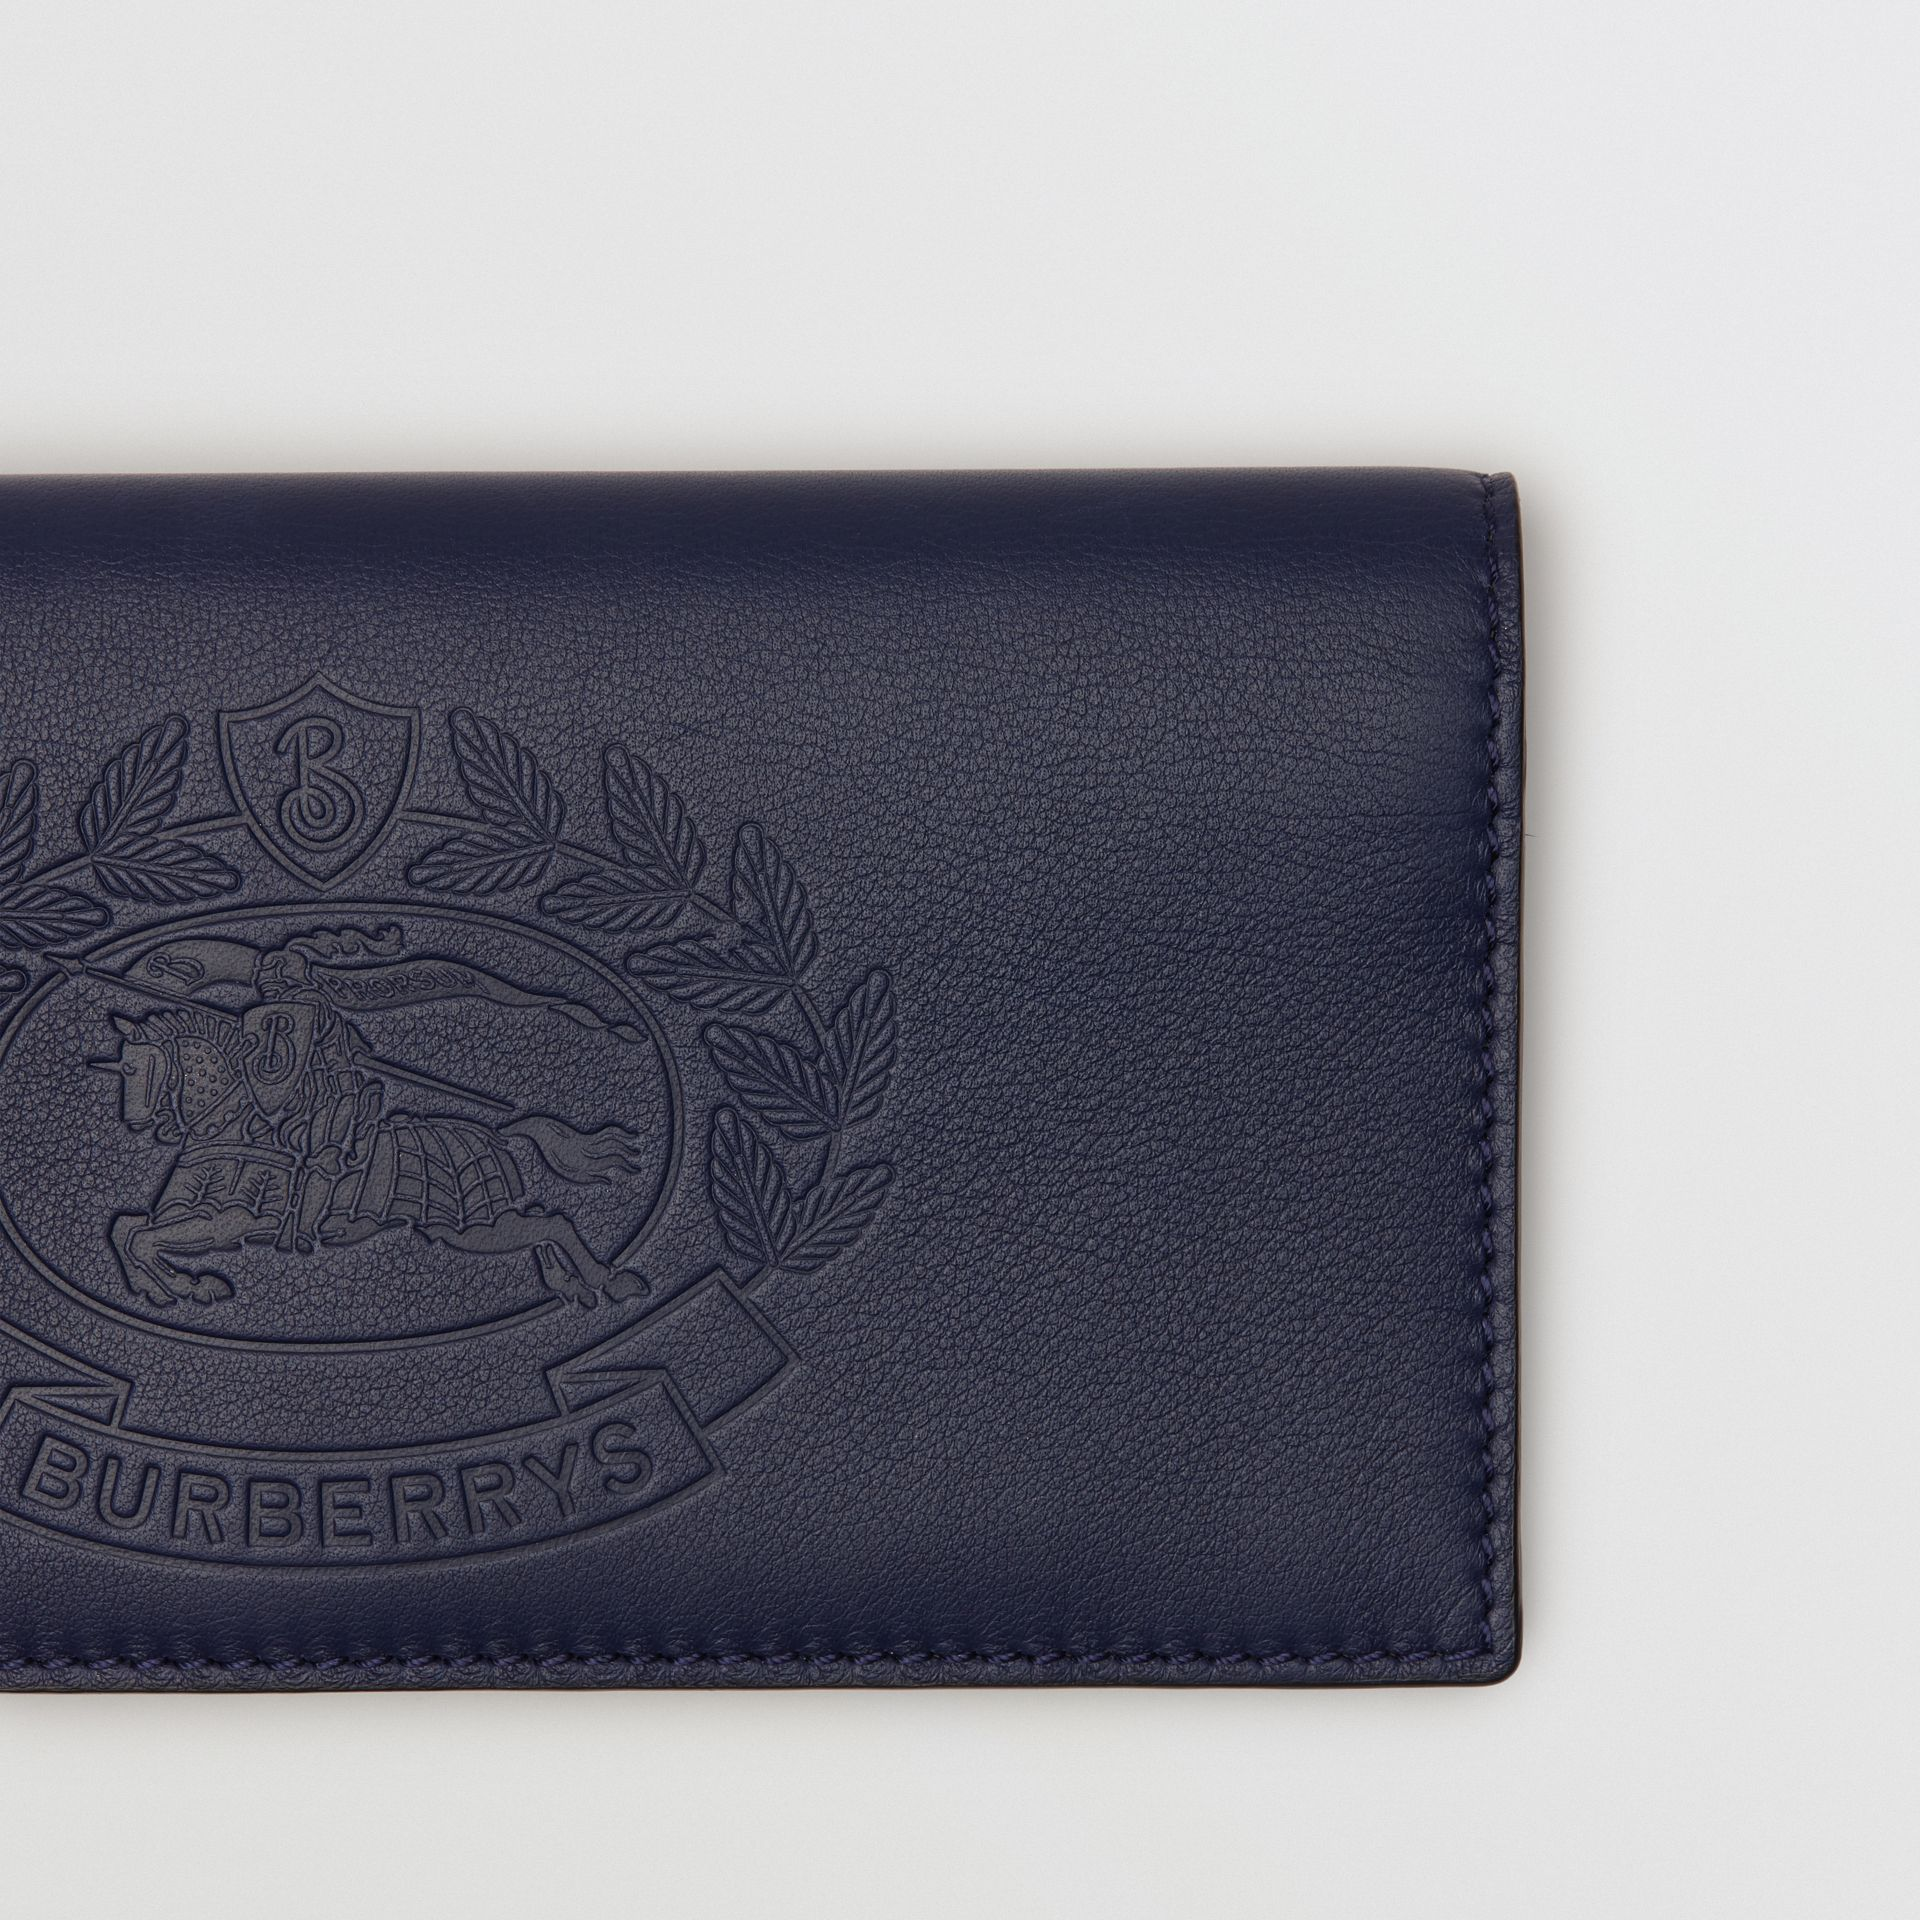 Embossed Crest Leather Continental Wallet in Regency Blue - Men | Burberry - gallery image 1